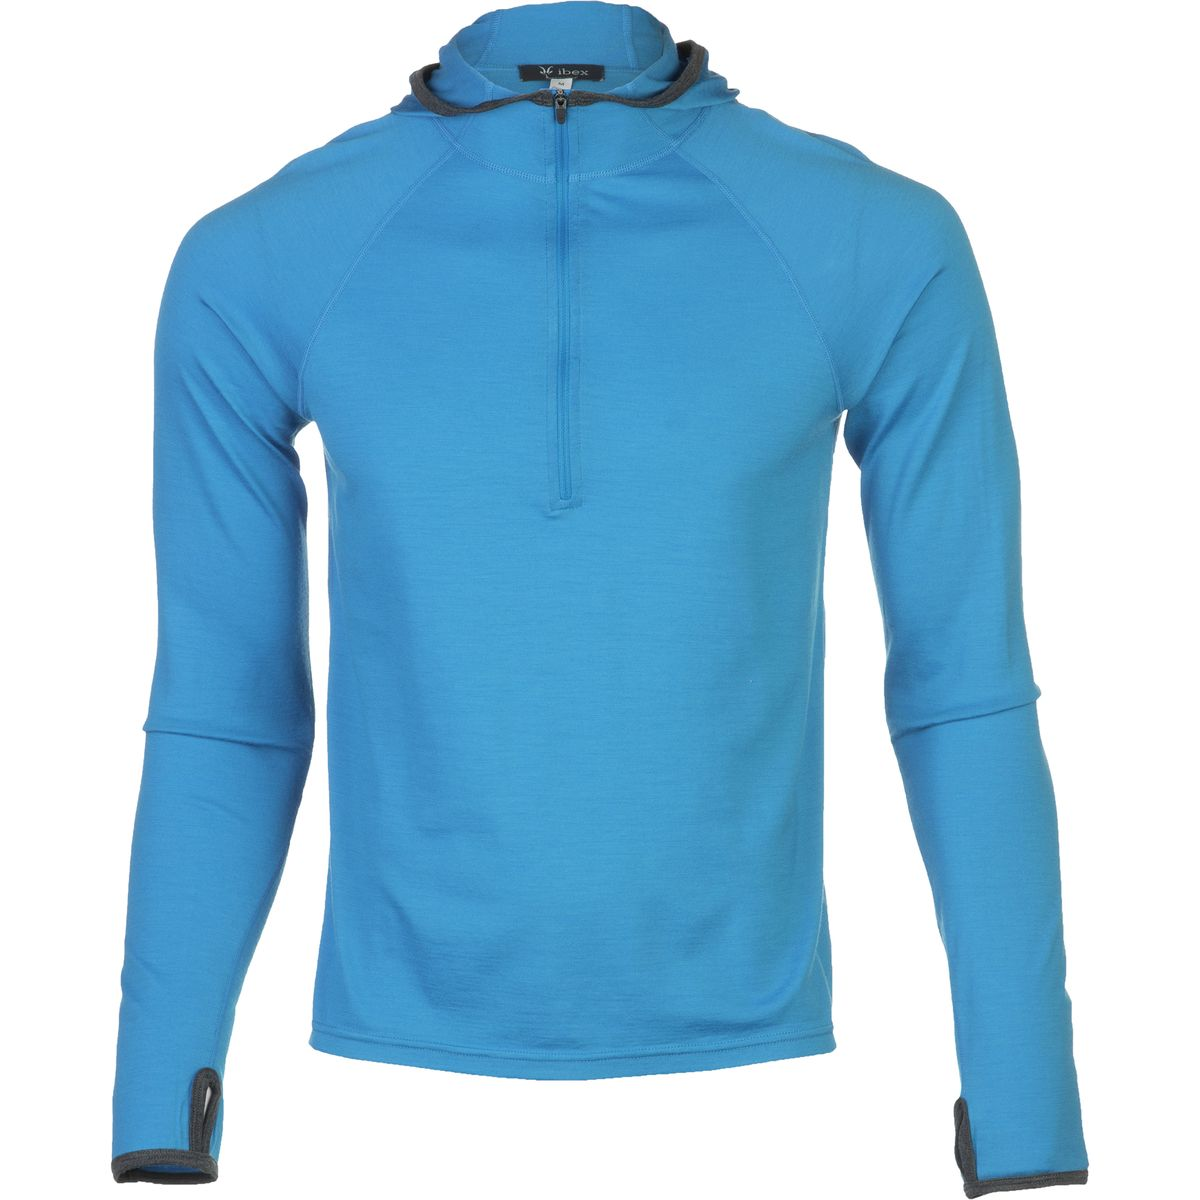 photo: Ibex Men's Hooded Indie long sleeve performance top